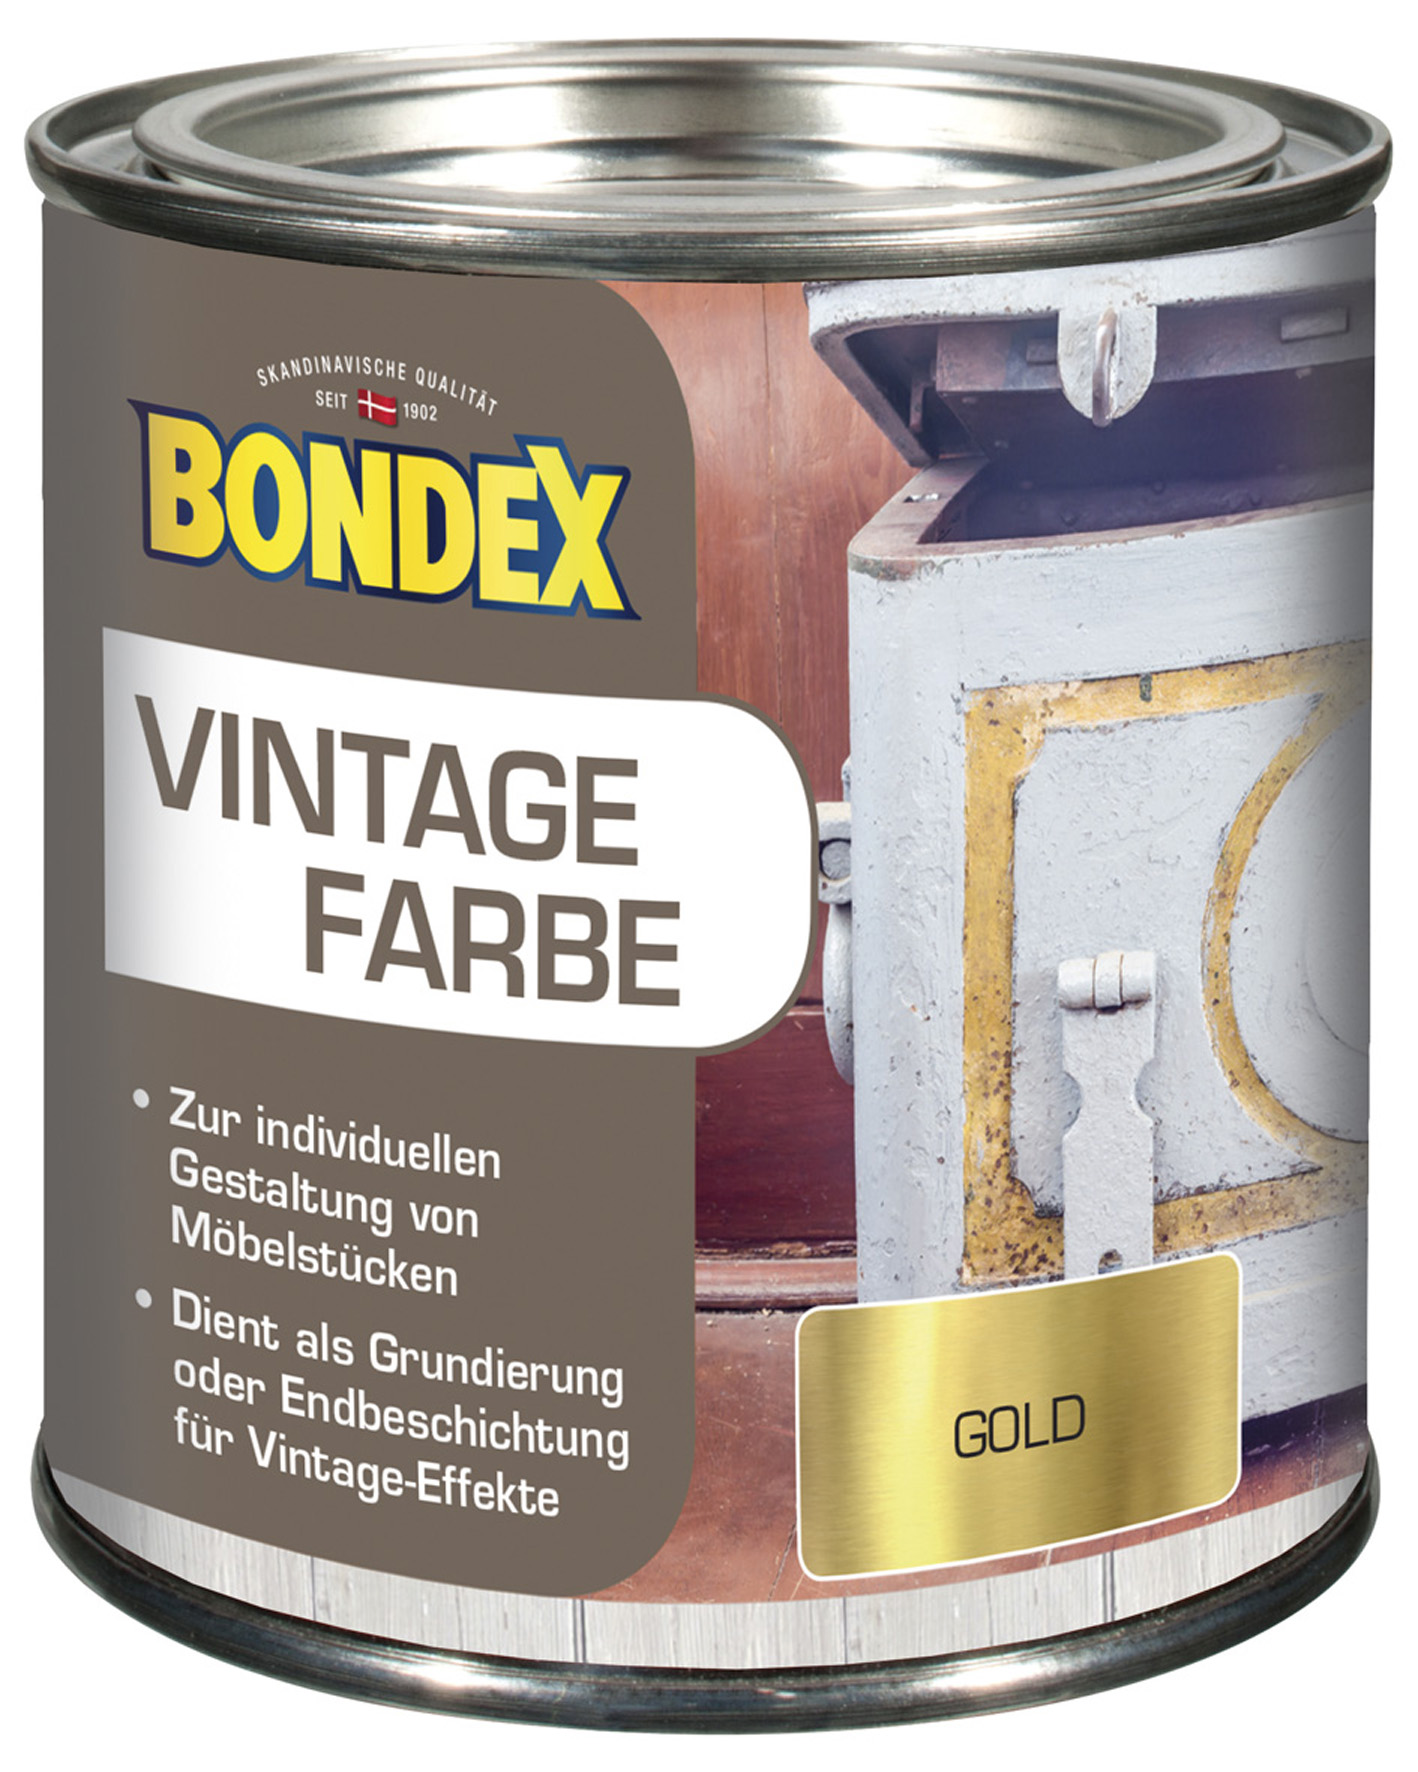 bondex vintage farbe die nr 1 vintage farbe f r holzprodukte bondex. Black Bedroom Furniture Sets. Home Design Ideas